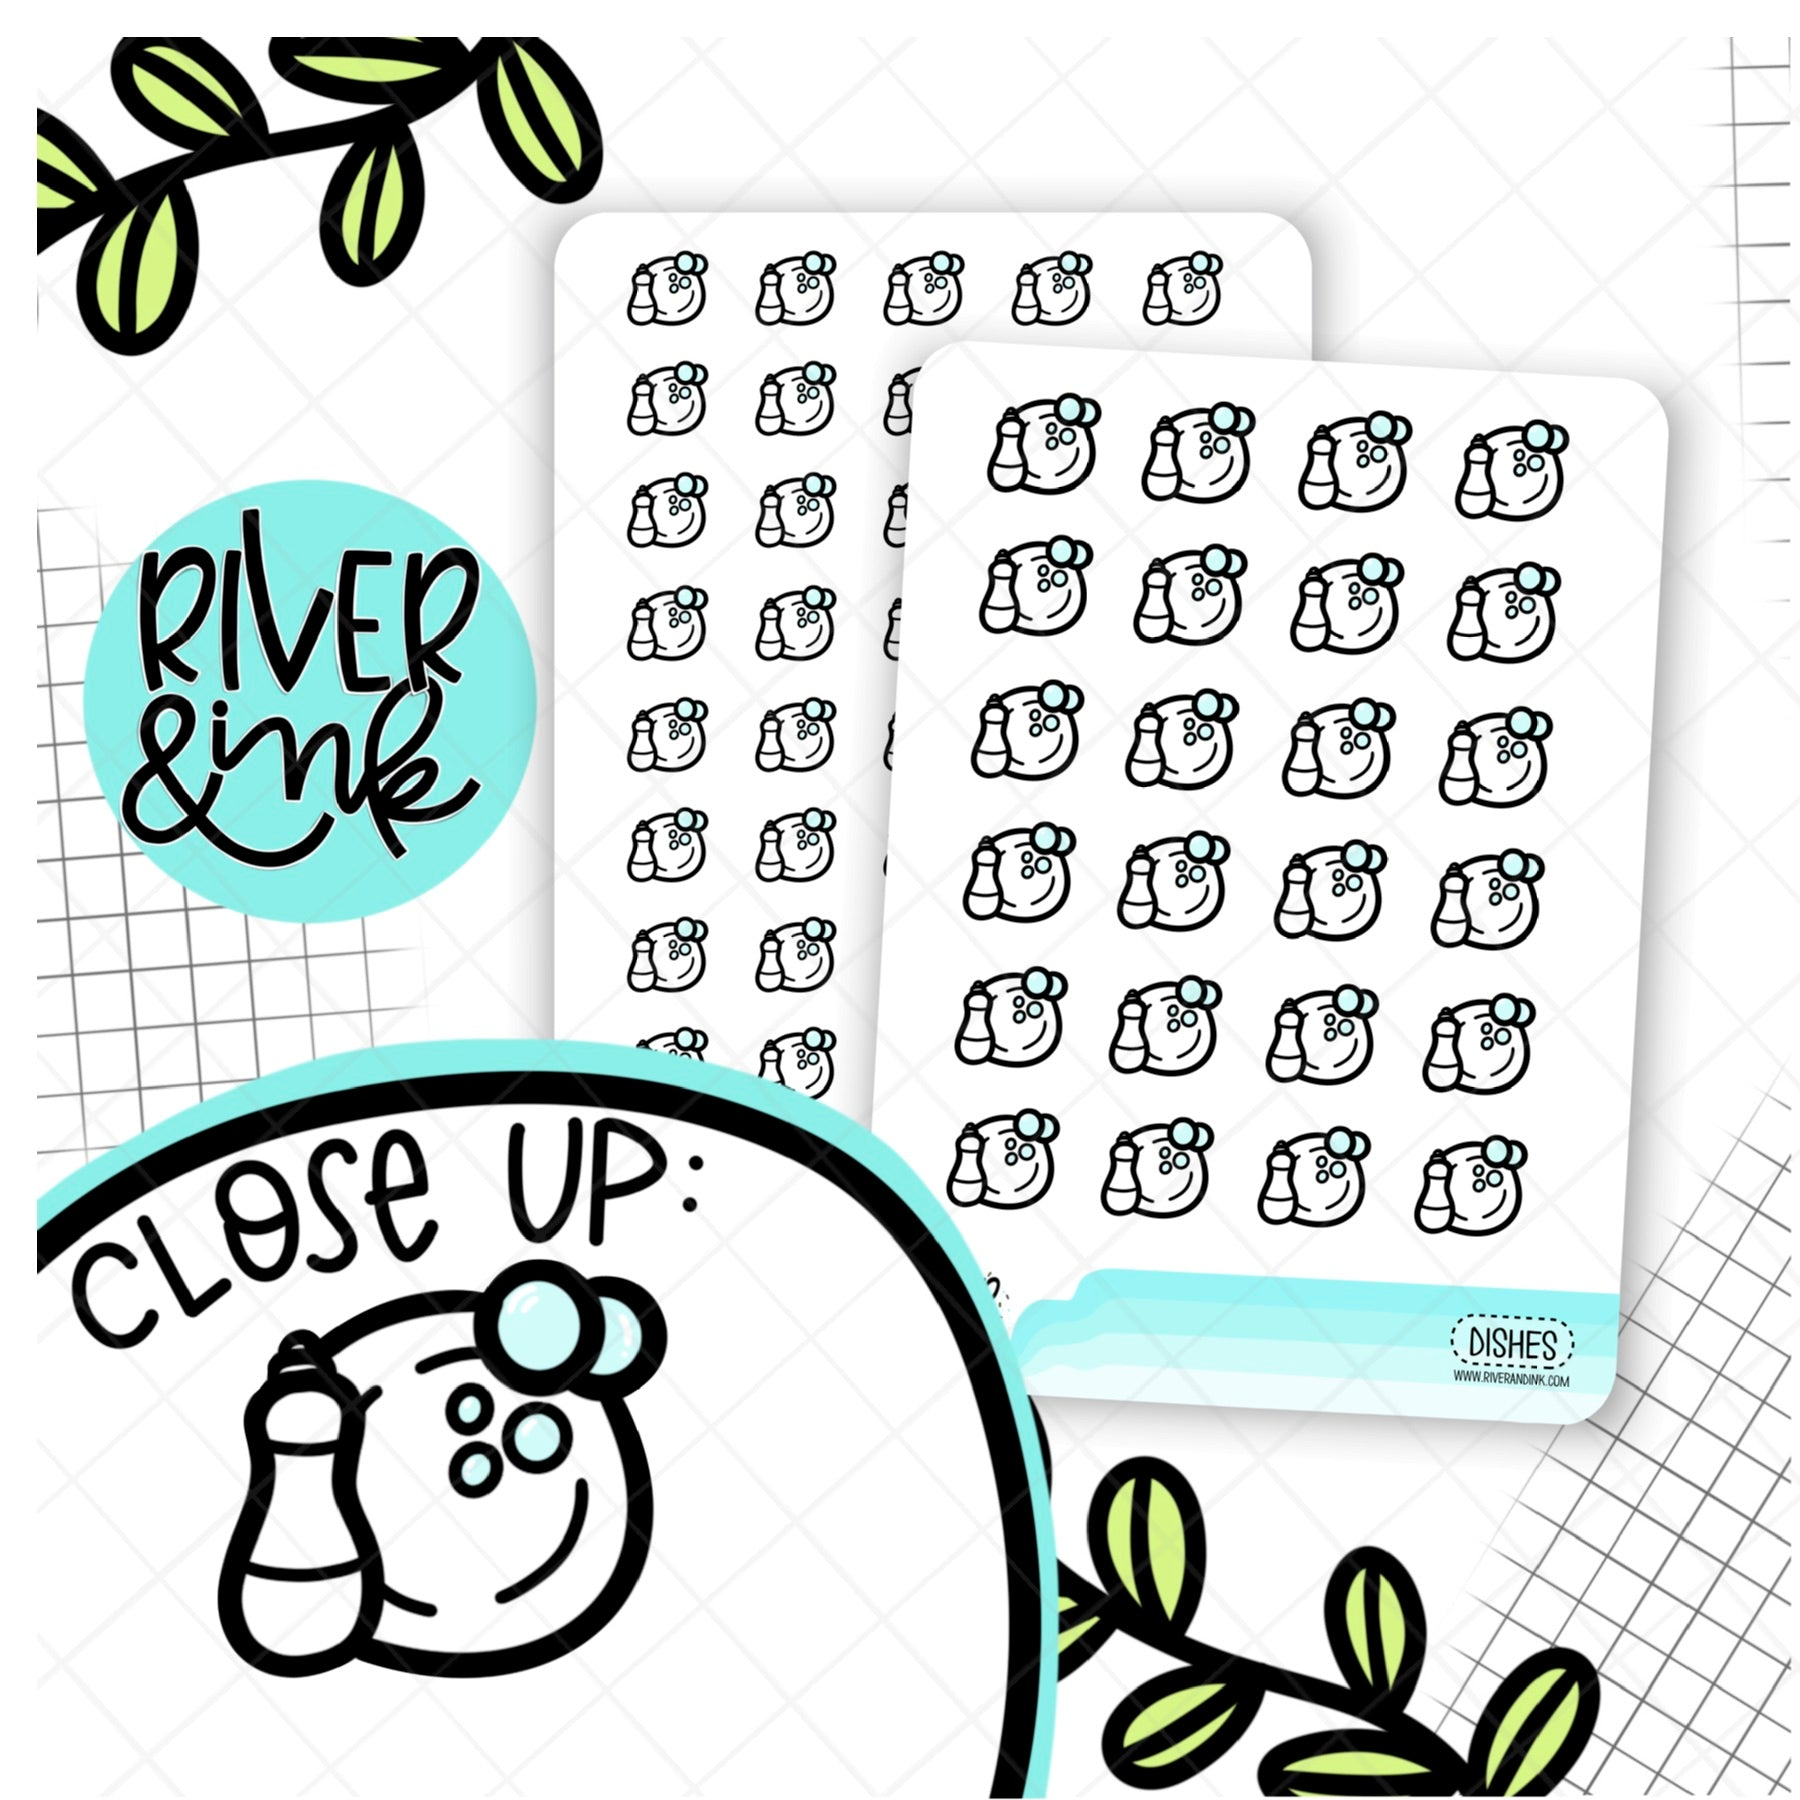 Black & White Dishes Icon | Hand Drawn Planner Stickers